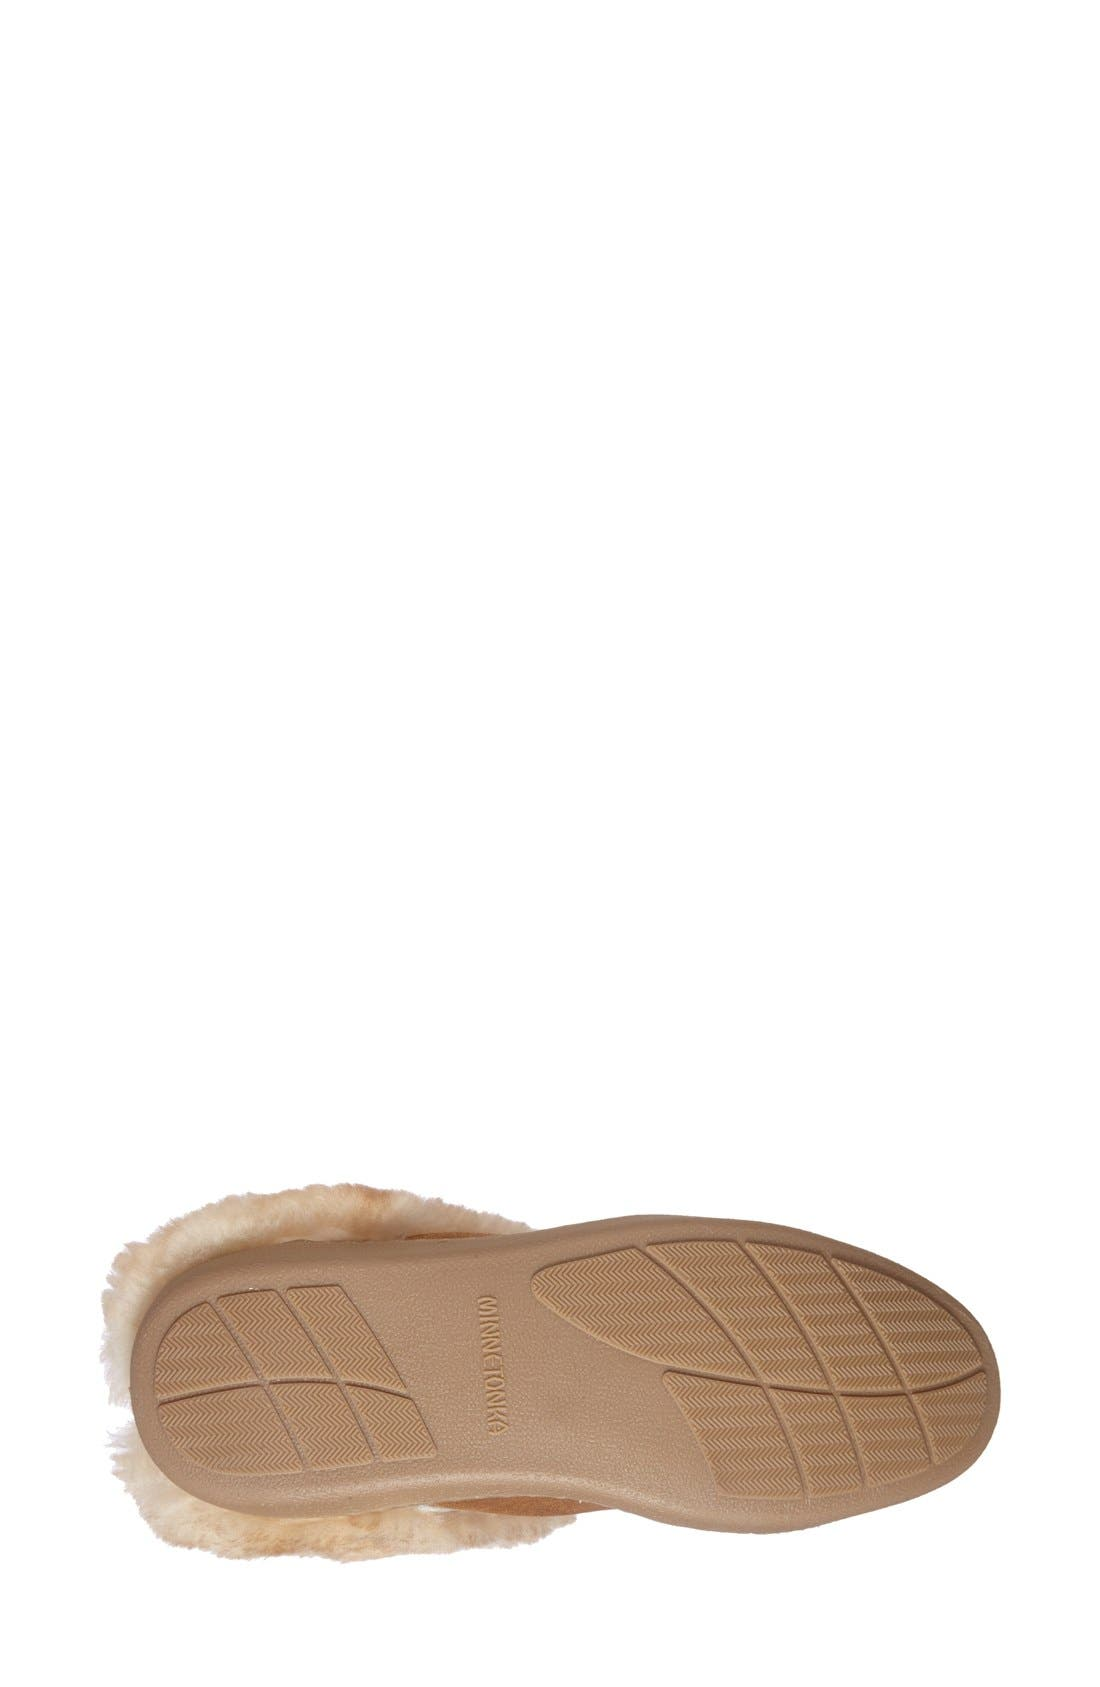 Sheepskin Mule Slipper,                             Alternate thumbnail 4, color,                             Tan Suede